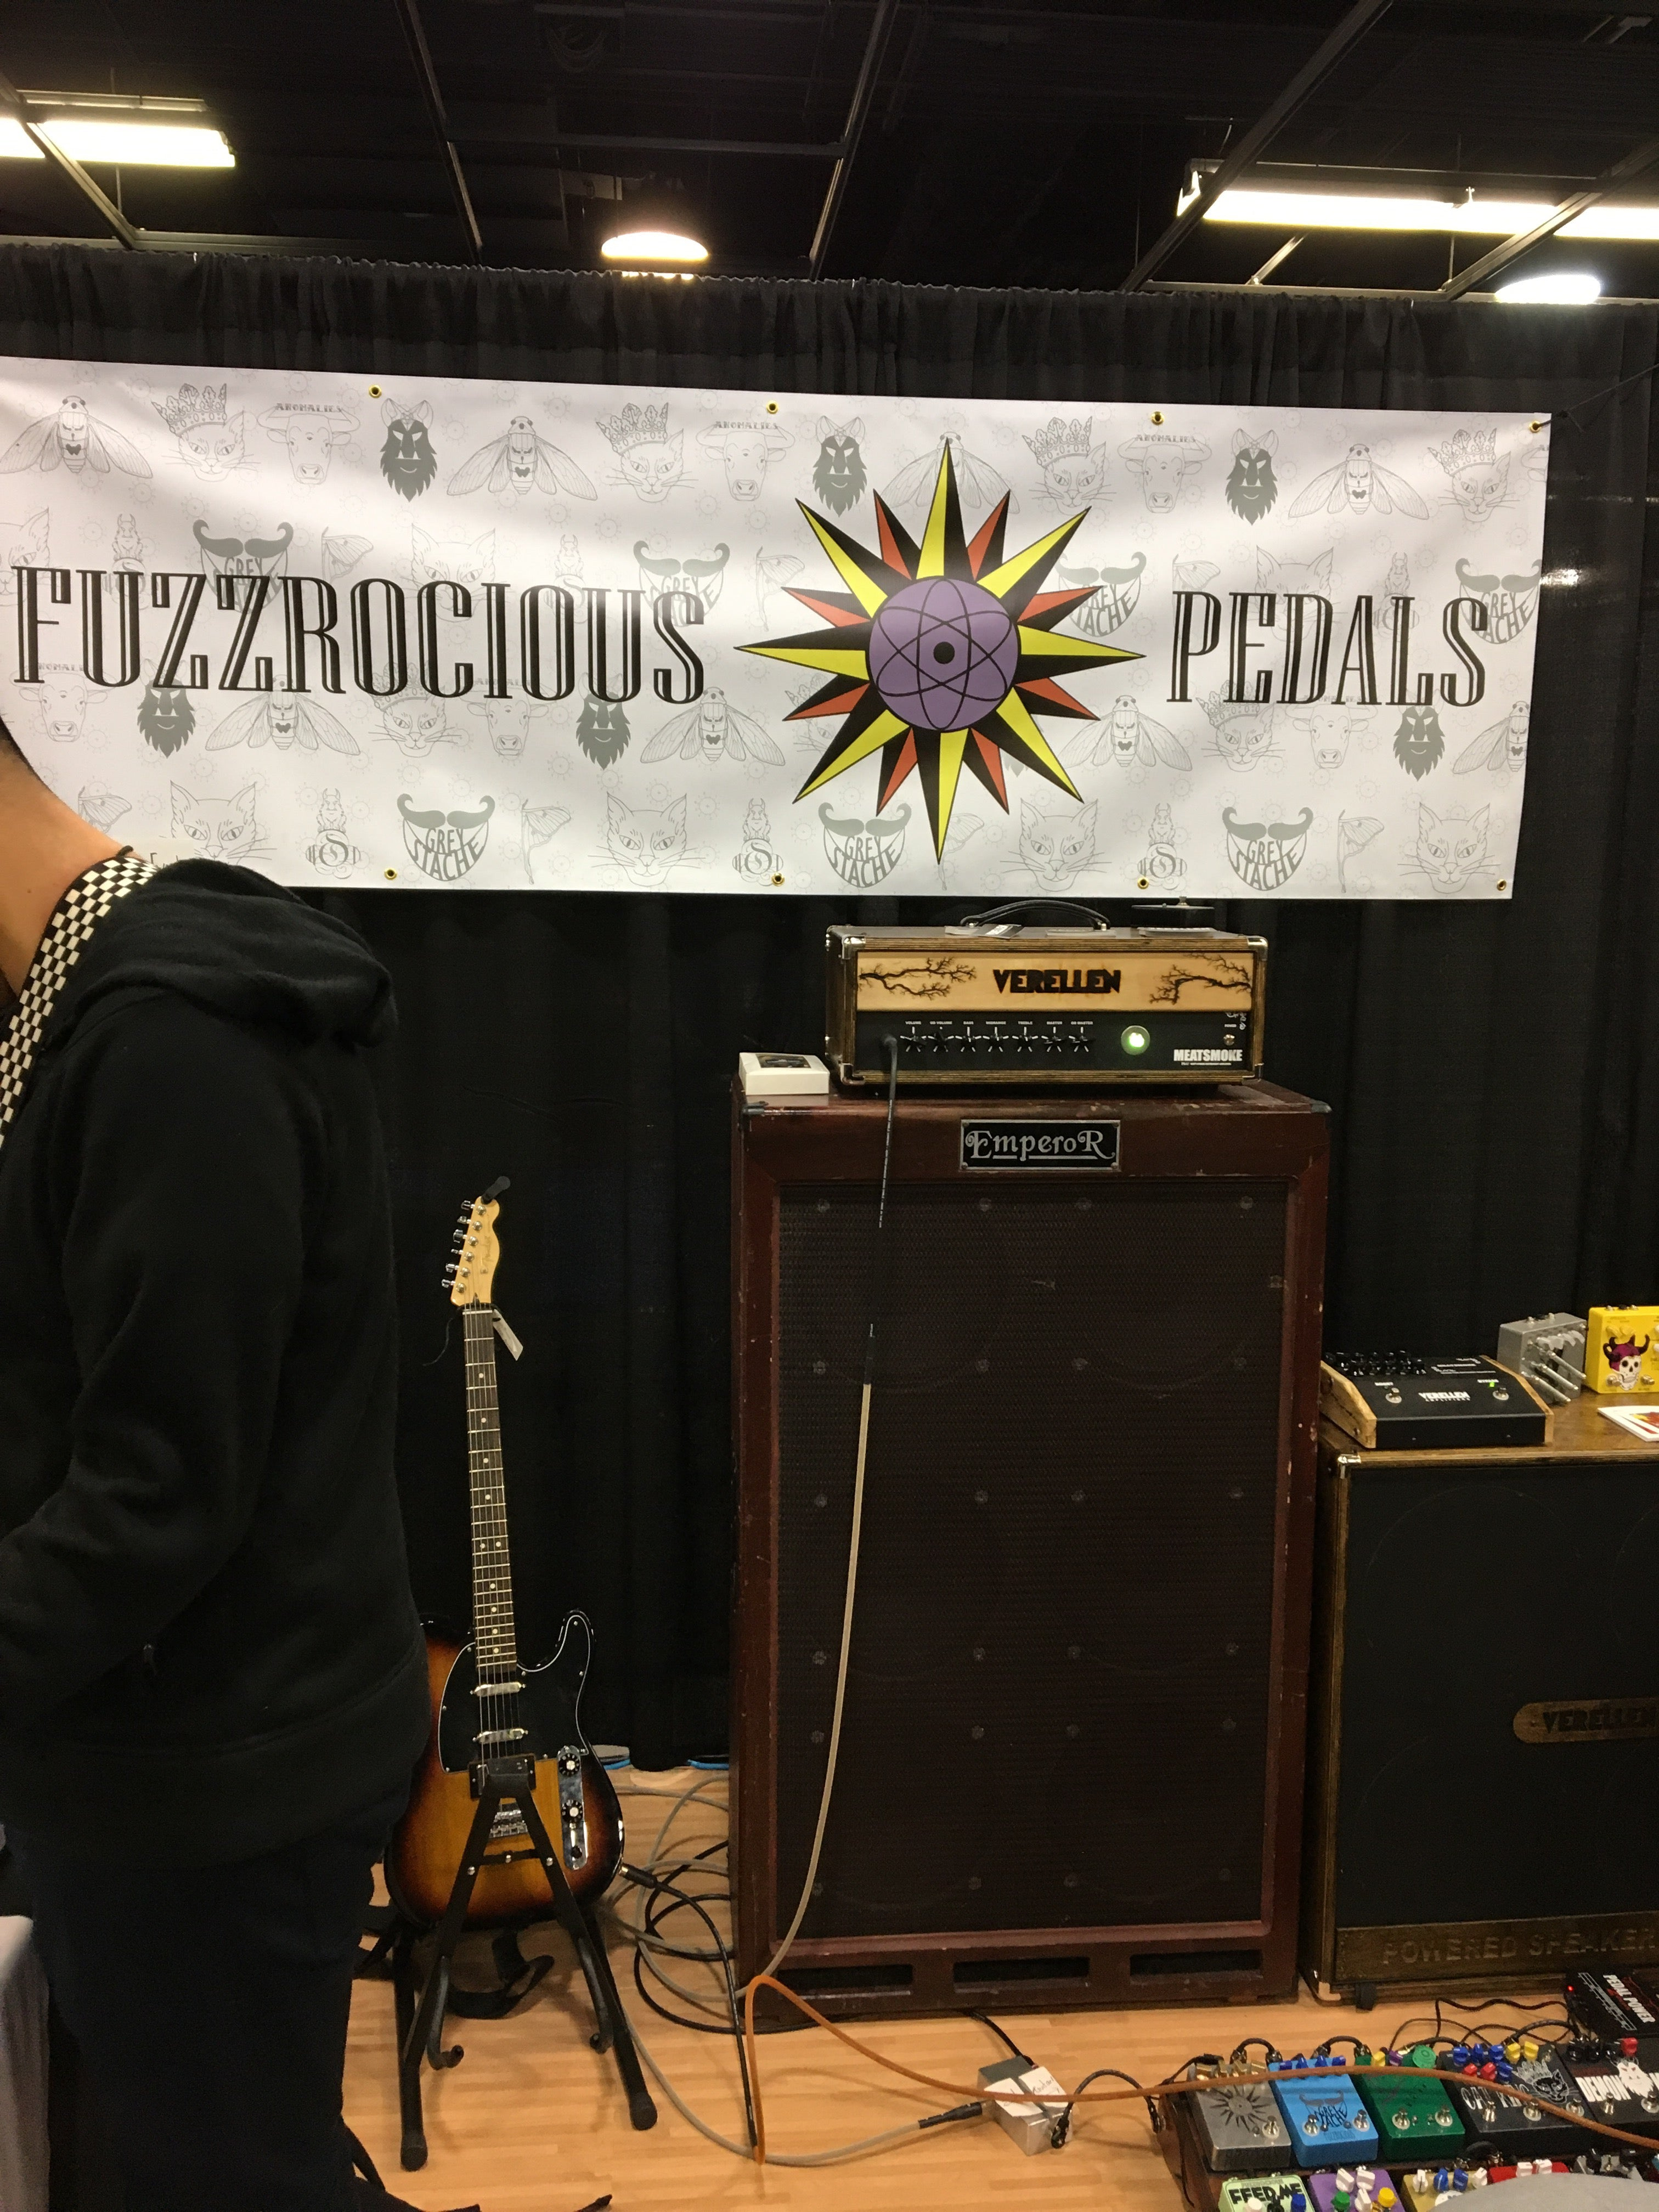 NAMM 2017: New Pedals from Fuzzrocious